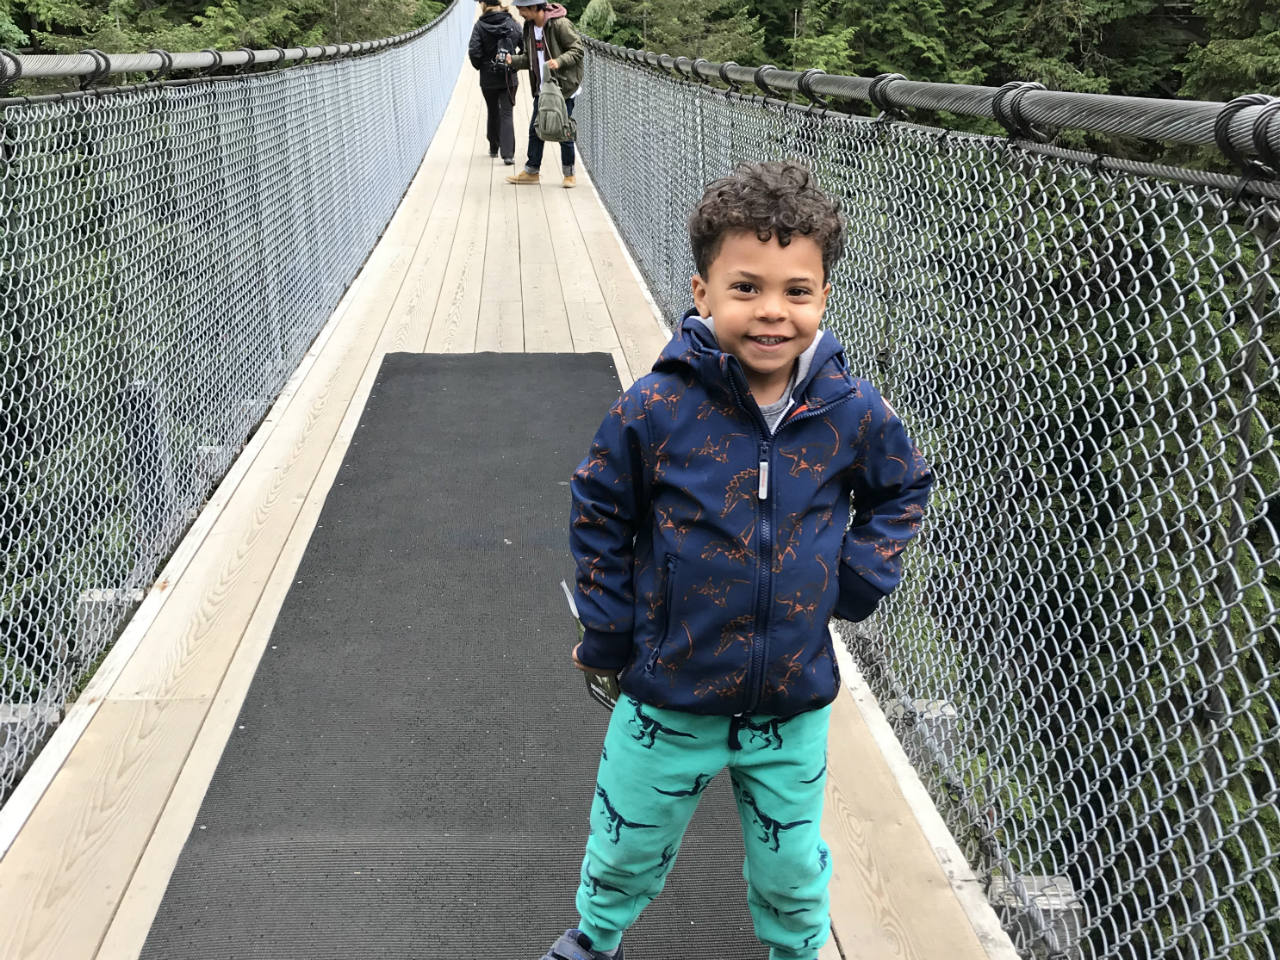 A little boy standing on the Capitano Suspension Bridge in Vancouver